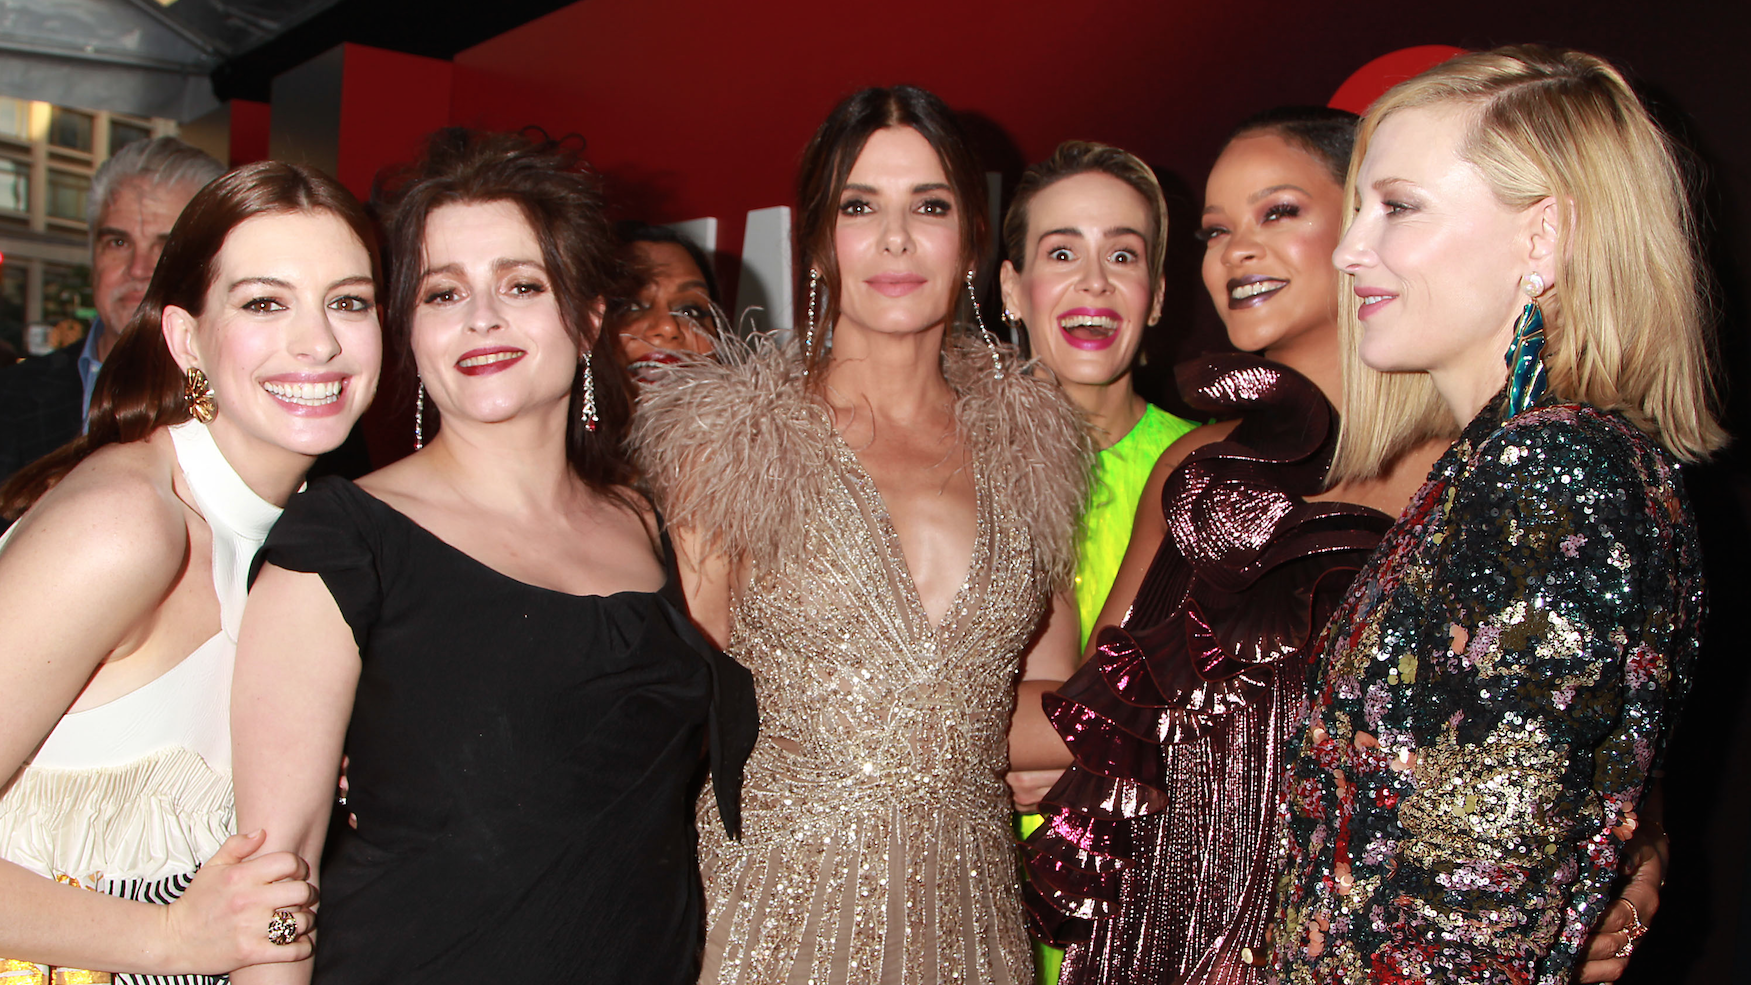 Ocean S 8 Red Carpet Photos Rihanna Cate Blanchett And More Indiewire